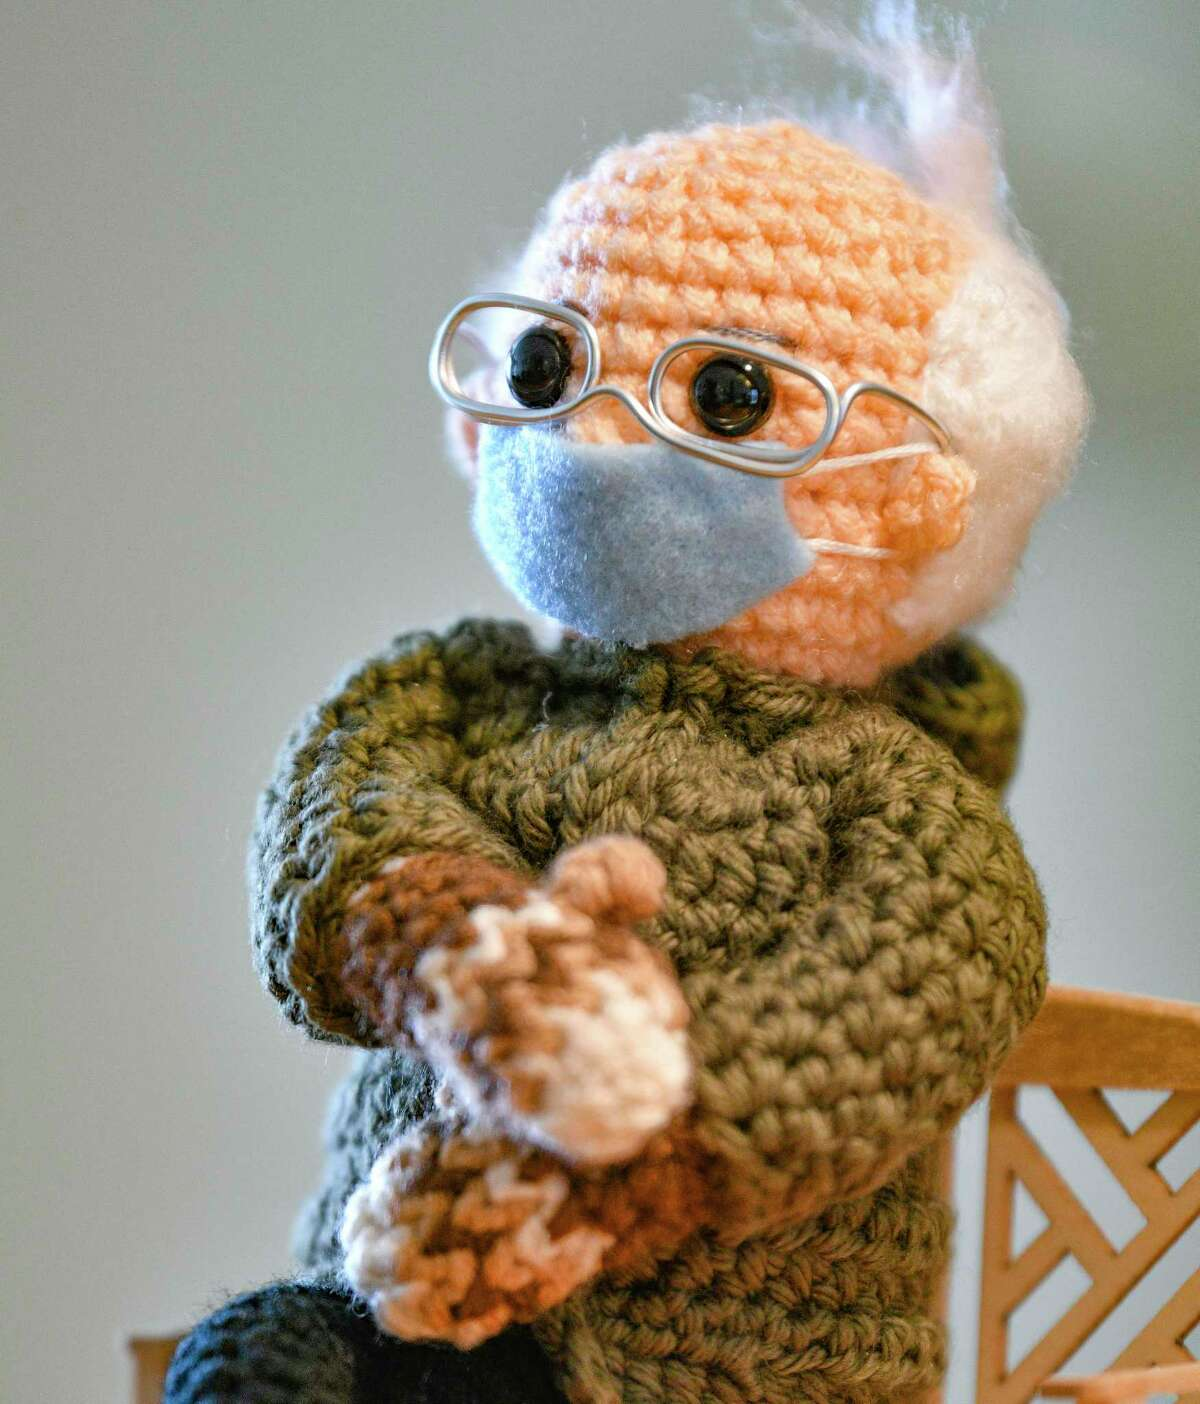 Tobey King's Bernie Sanders doll sold for $20,300 on eBay Tuesday, with all proceeds going to Meals on Wheels. America. She said that she paid special attention to the mittens, which replicate those worn by Sen. Sanders at the inauguration of President Joe Biden Thursday. She said that she ruffled his hair because